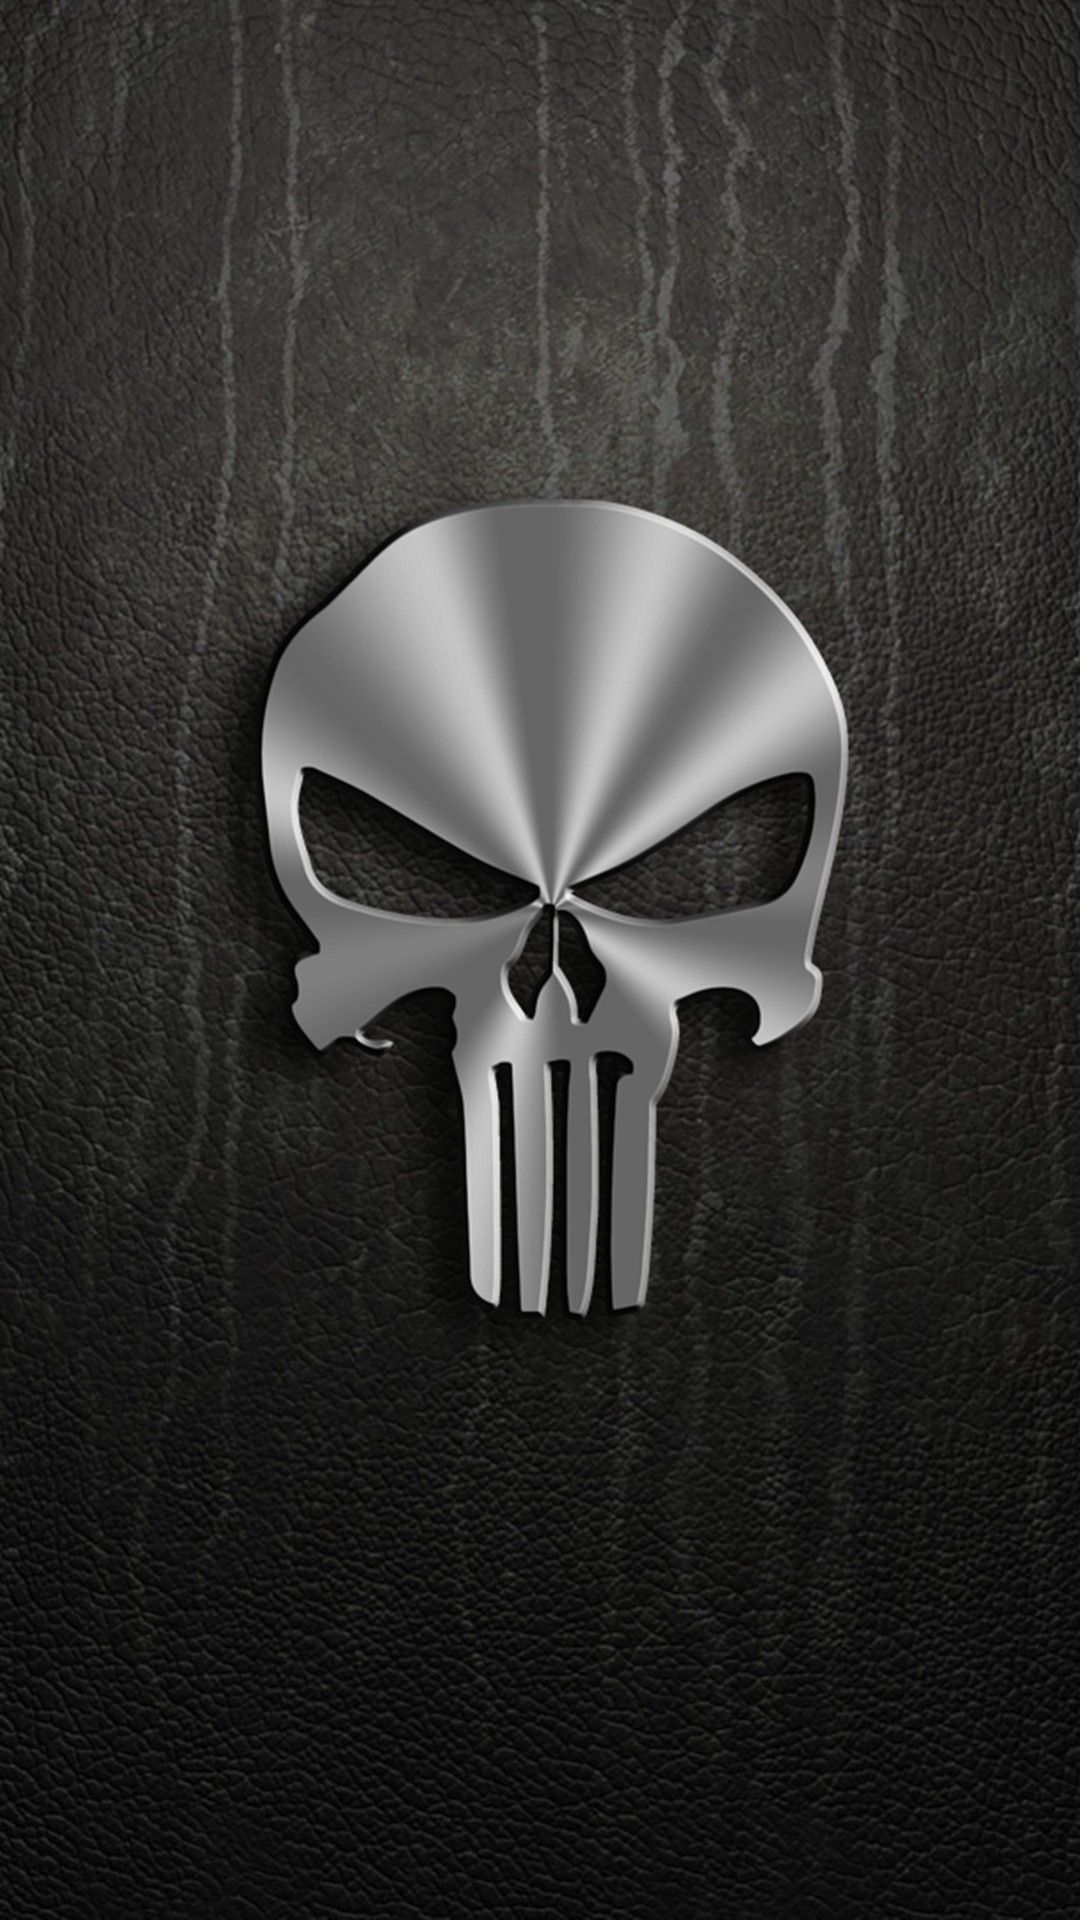 Pin By Jhon Perez On Punisher Punisher Logo Punisher Artwork Punisher